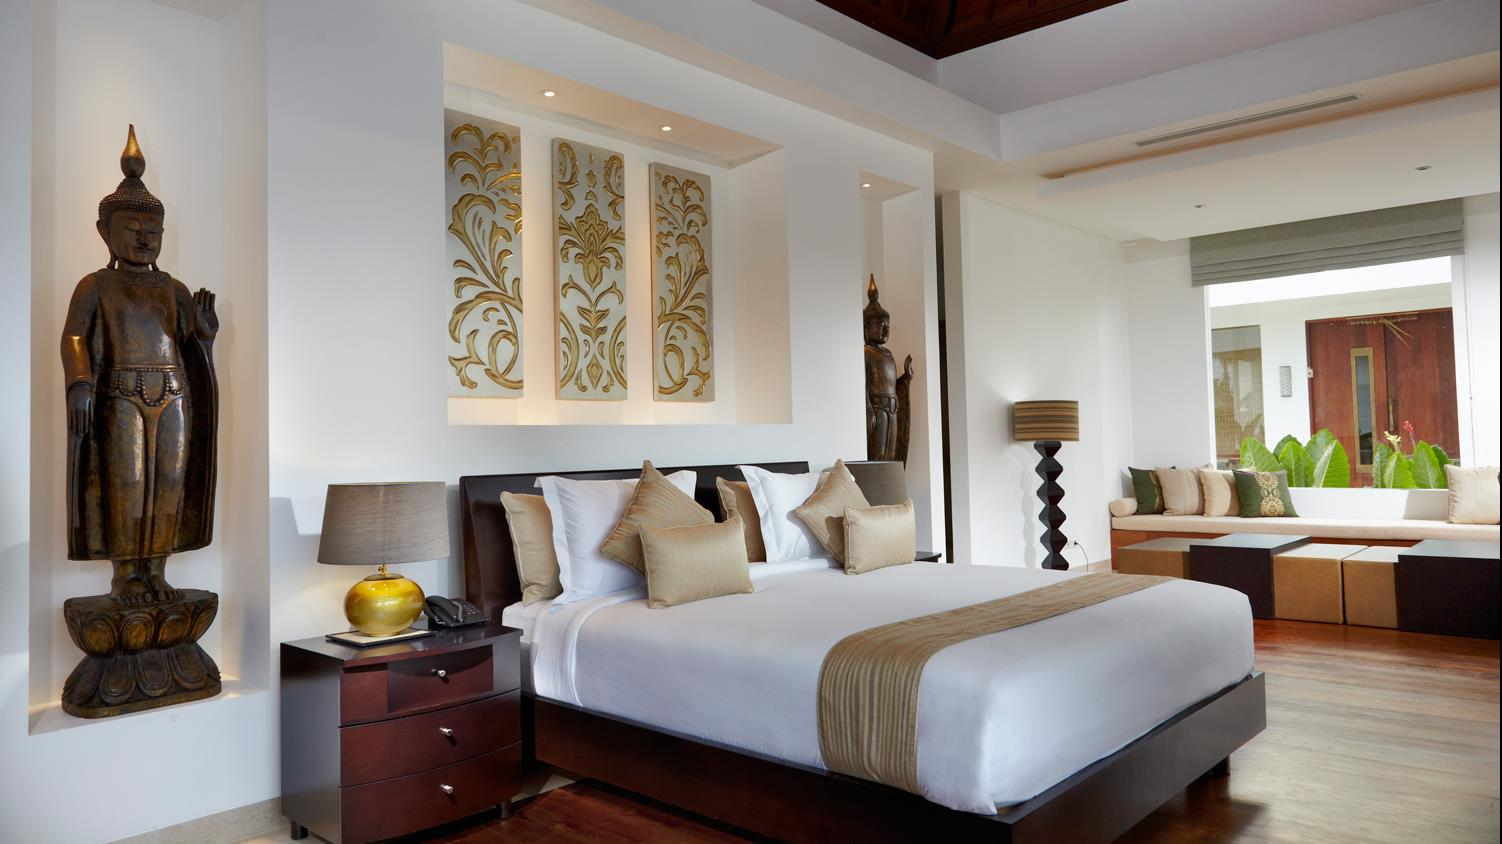 Bedroom with Seating Area - Villa Malaathina - Umalas, Bali